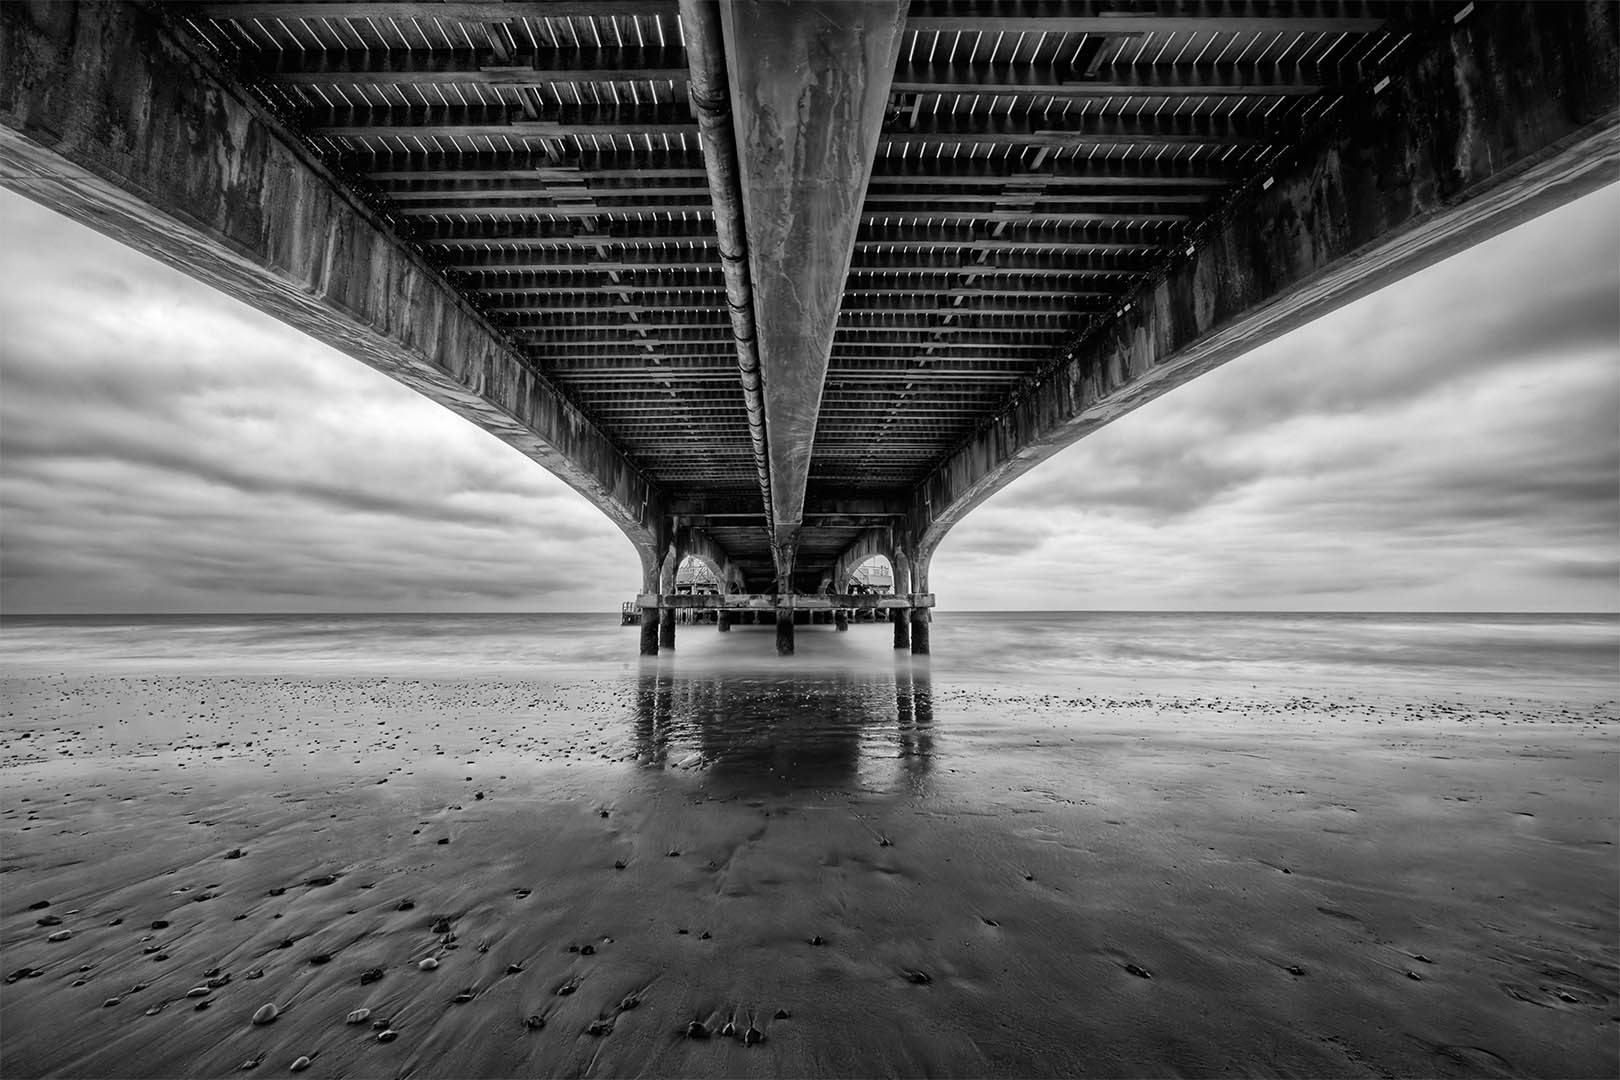 Underneath Bournemouth Pier